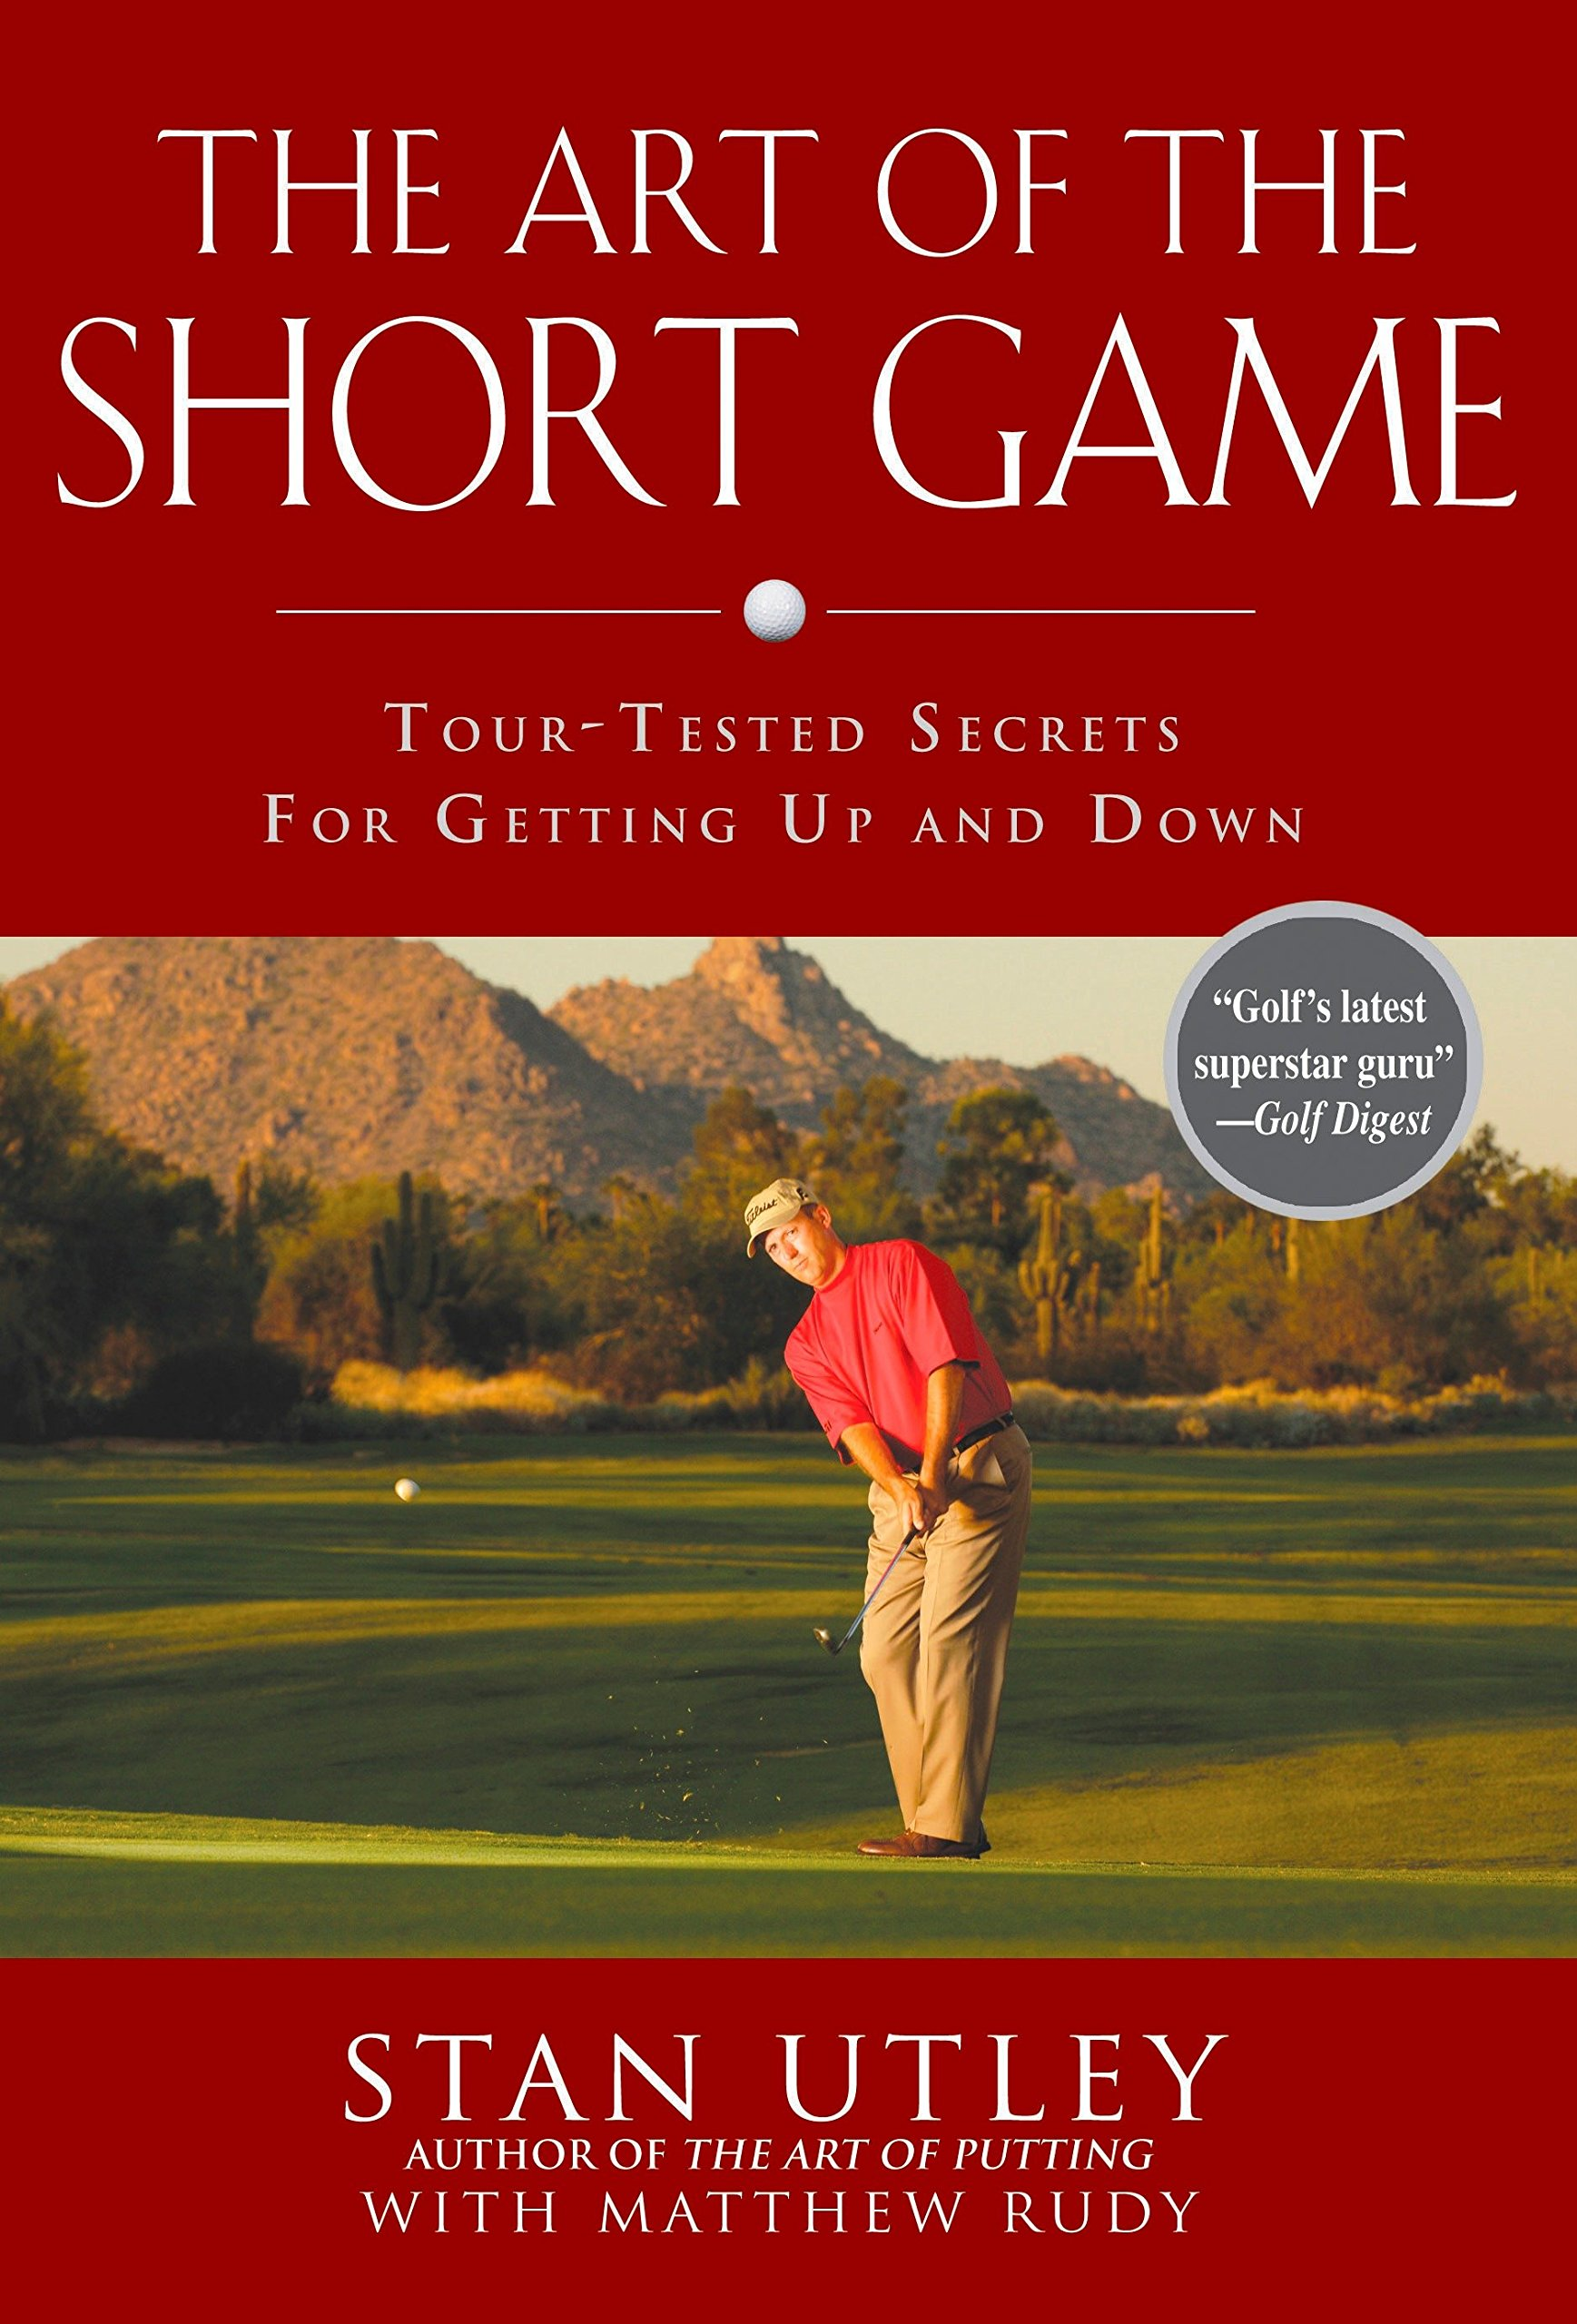 The Art of the Short Game: Tour-Tested Secrets for Getting Up and Down:  Stan Utley, Matthew Rudy: 9781592402922: Amazon.com: Books